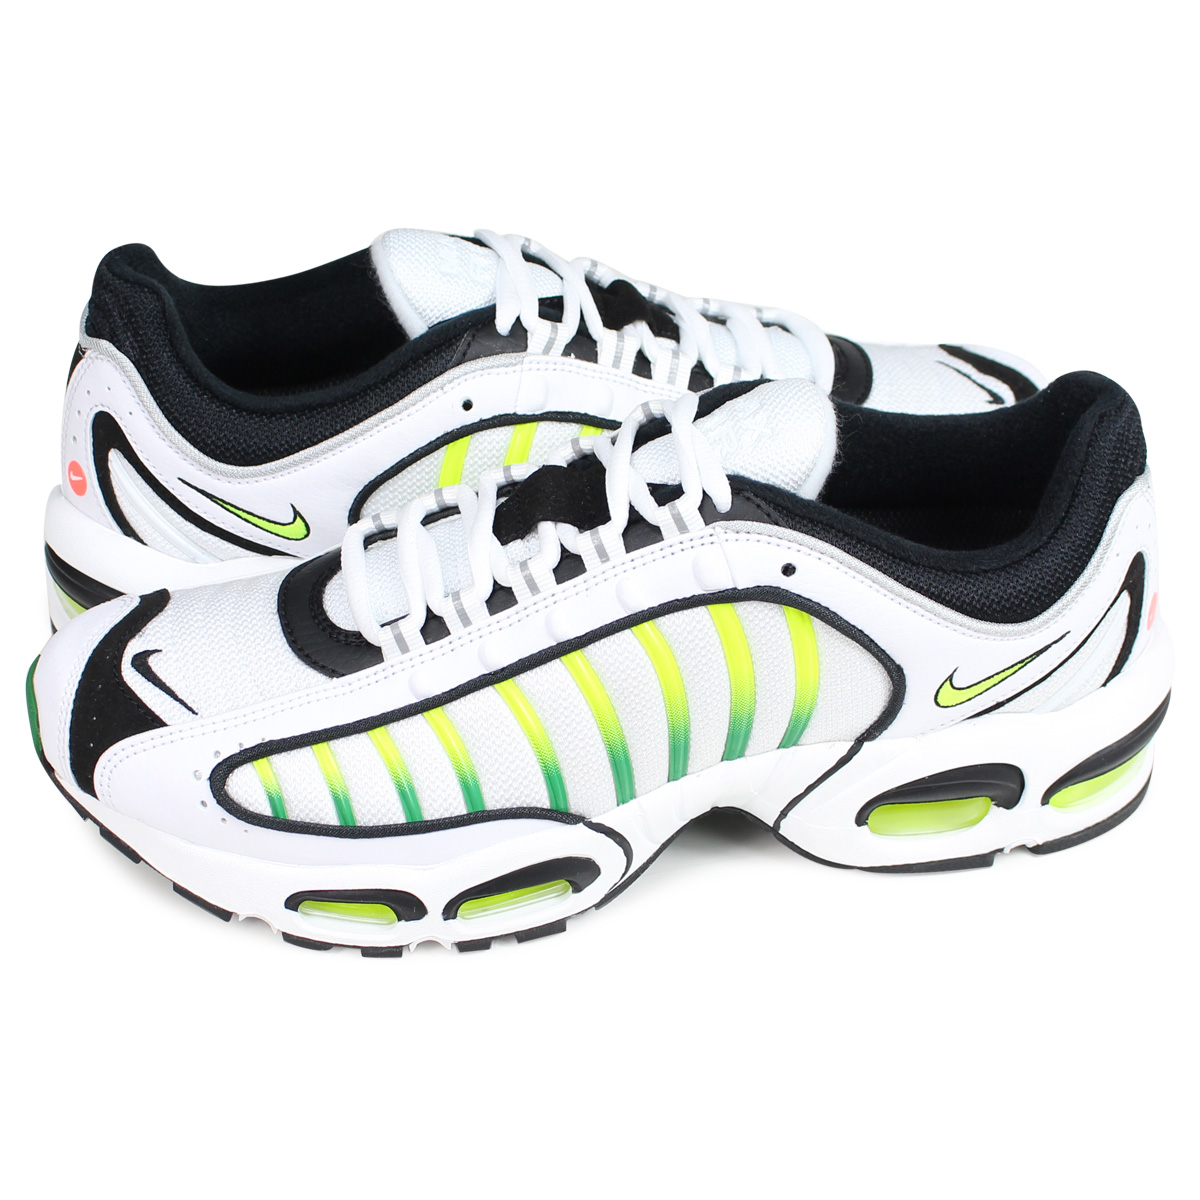 online store 296fc e0c15 Nike NIKE Air Max tale wind 4 sneakers men AIR MAX TAILWIND 4 white white  AQ2567-100  load planned Shinnyu load in reservation product 5 16  containing